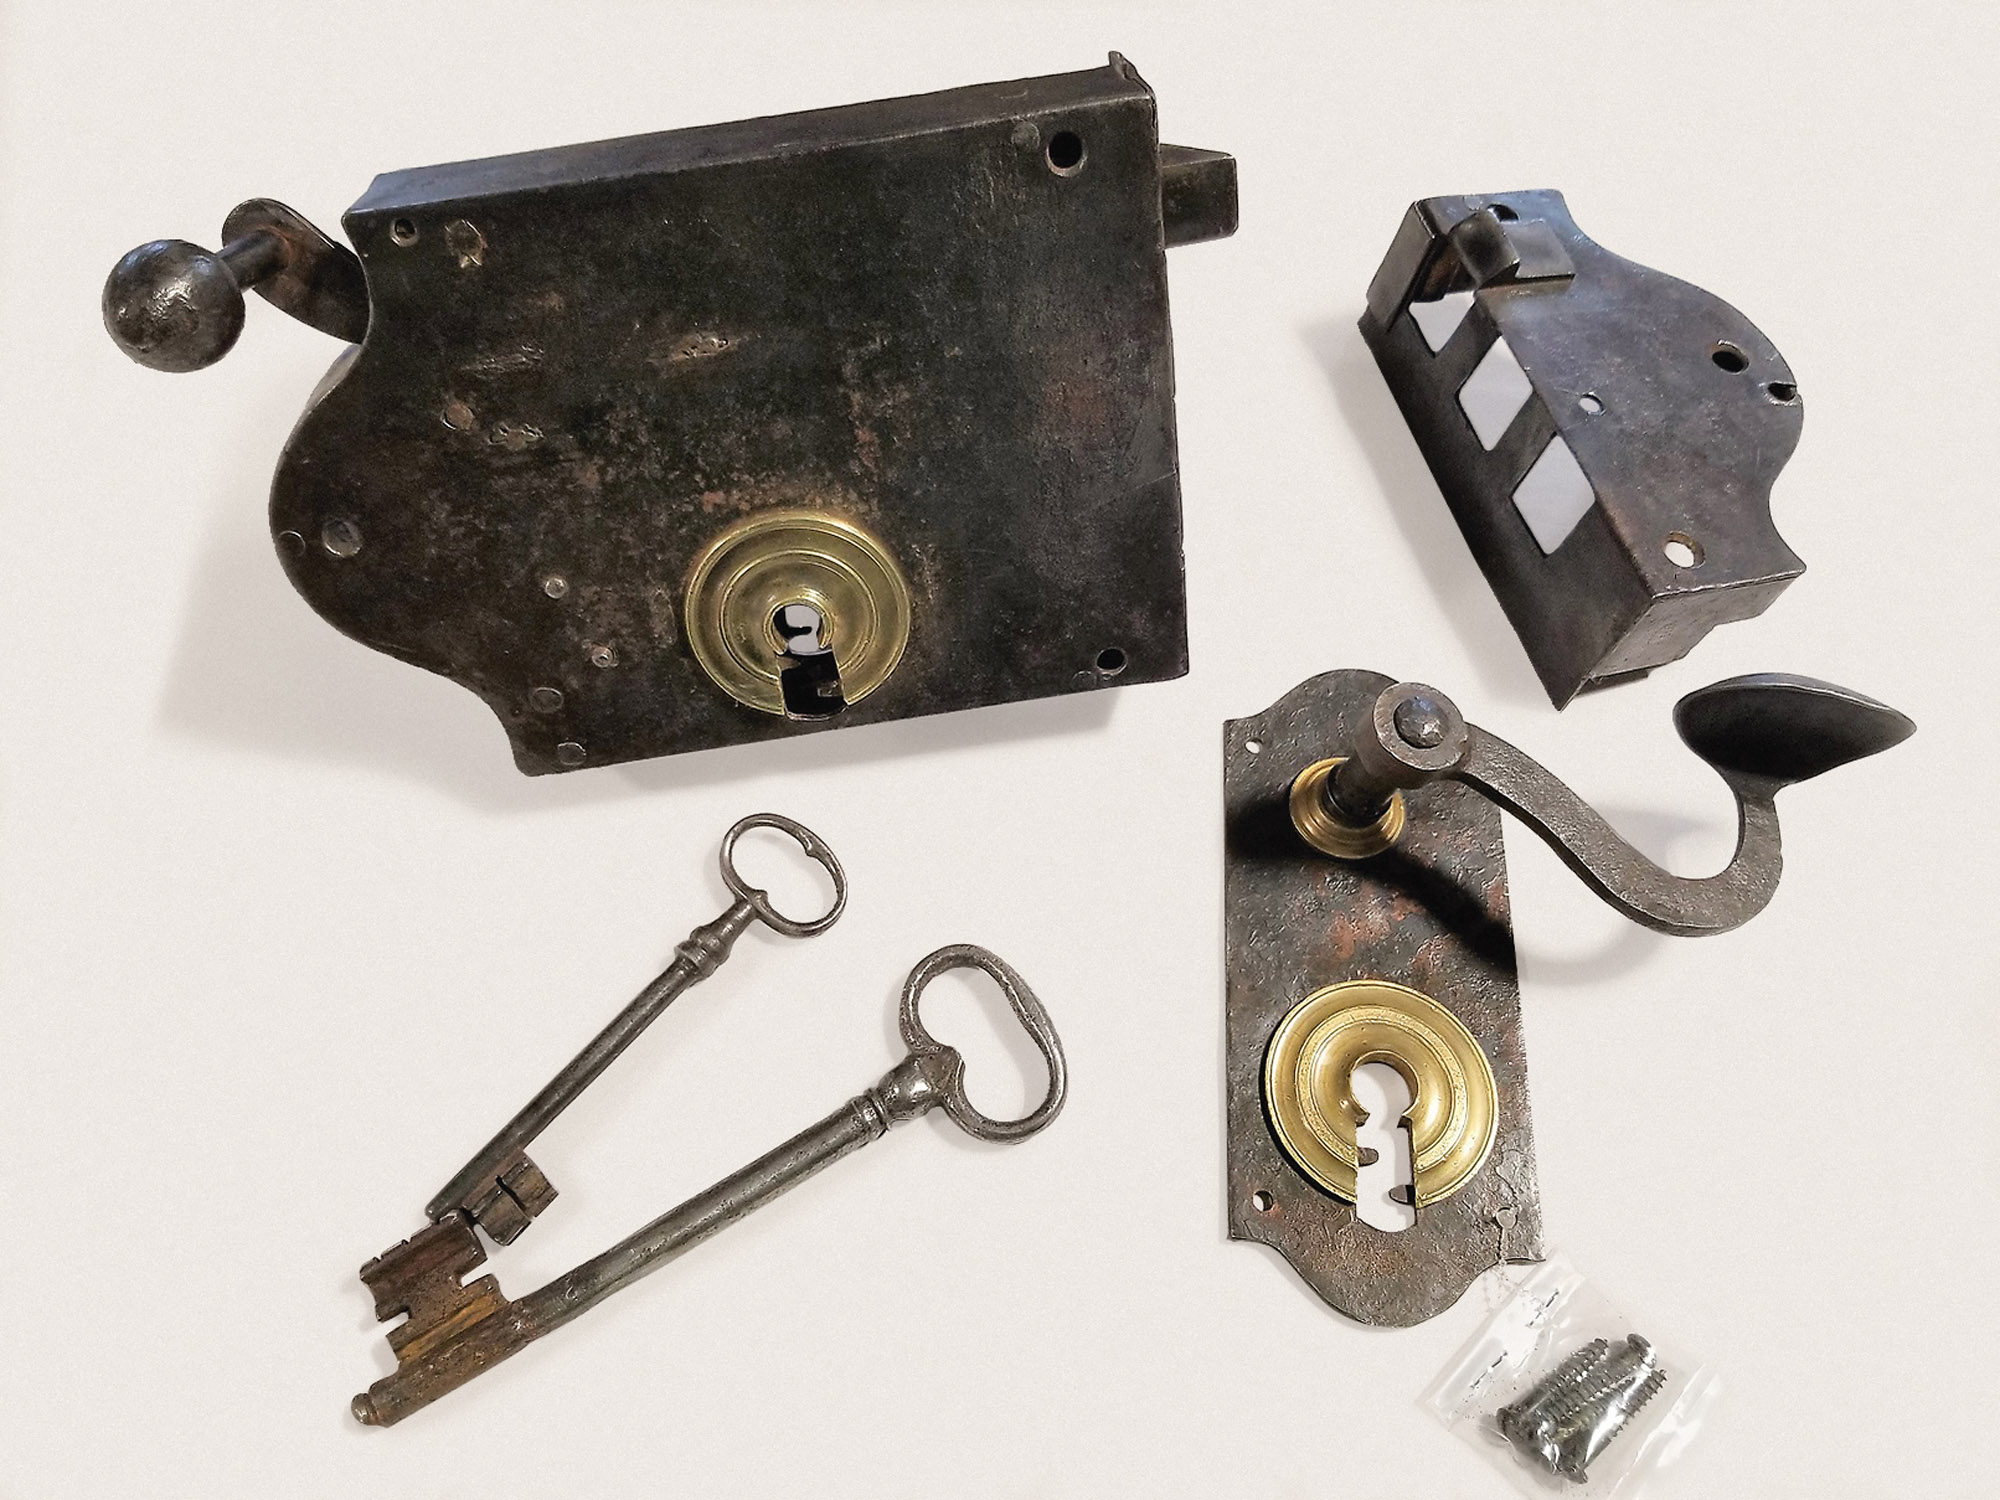 A homeowner who had part of a functioning, 17th-century iron-and-brass lock brought it to the team at Heritage Metalworks, who custom-forged a new trim plate and added brass details to match the original lock. Now the lock has a mating latch on the other side of the door.